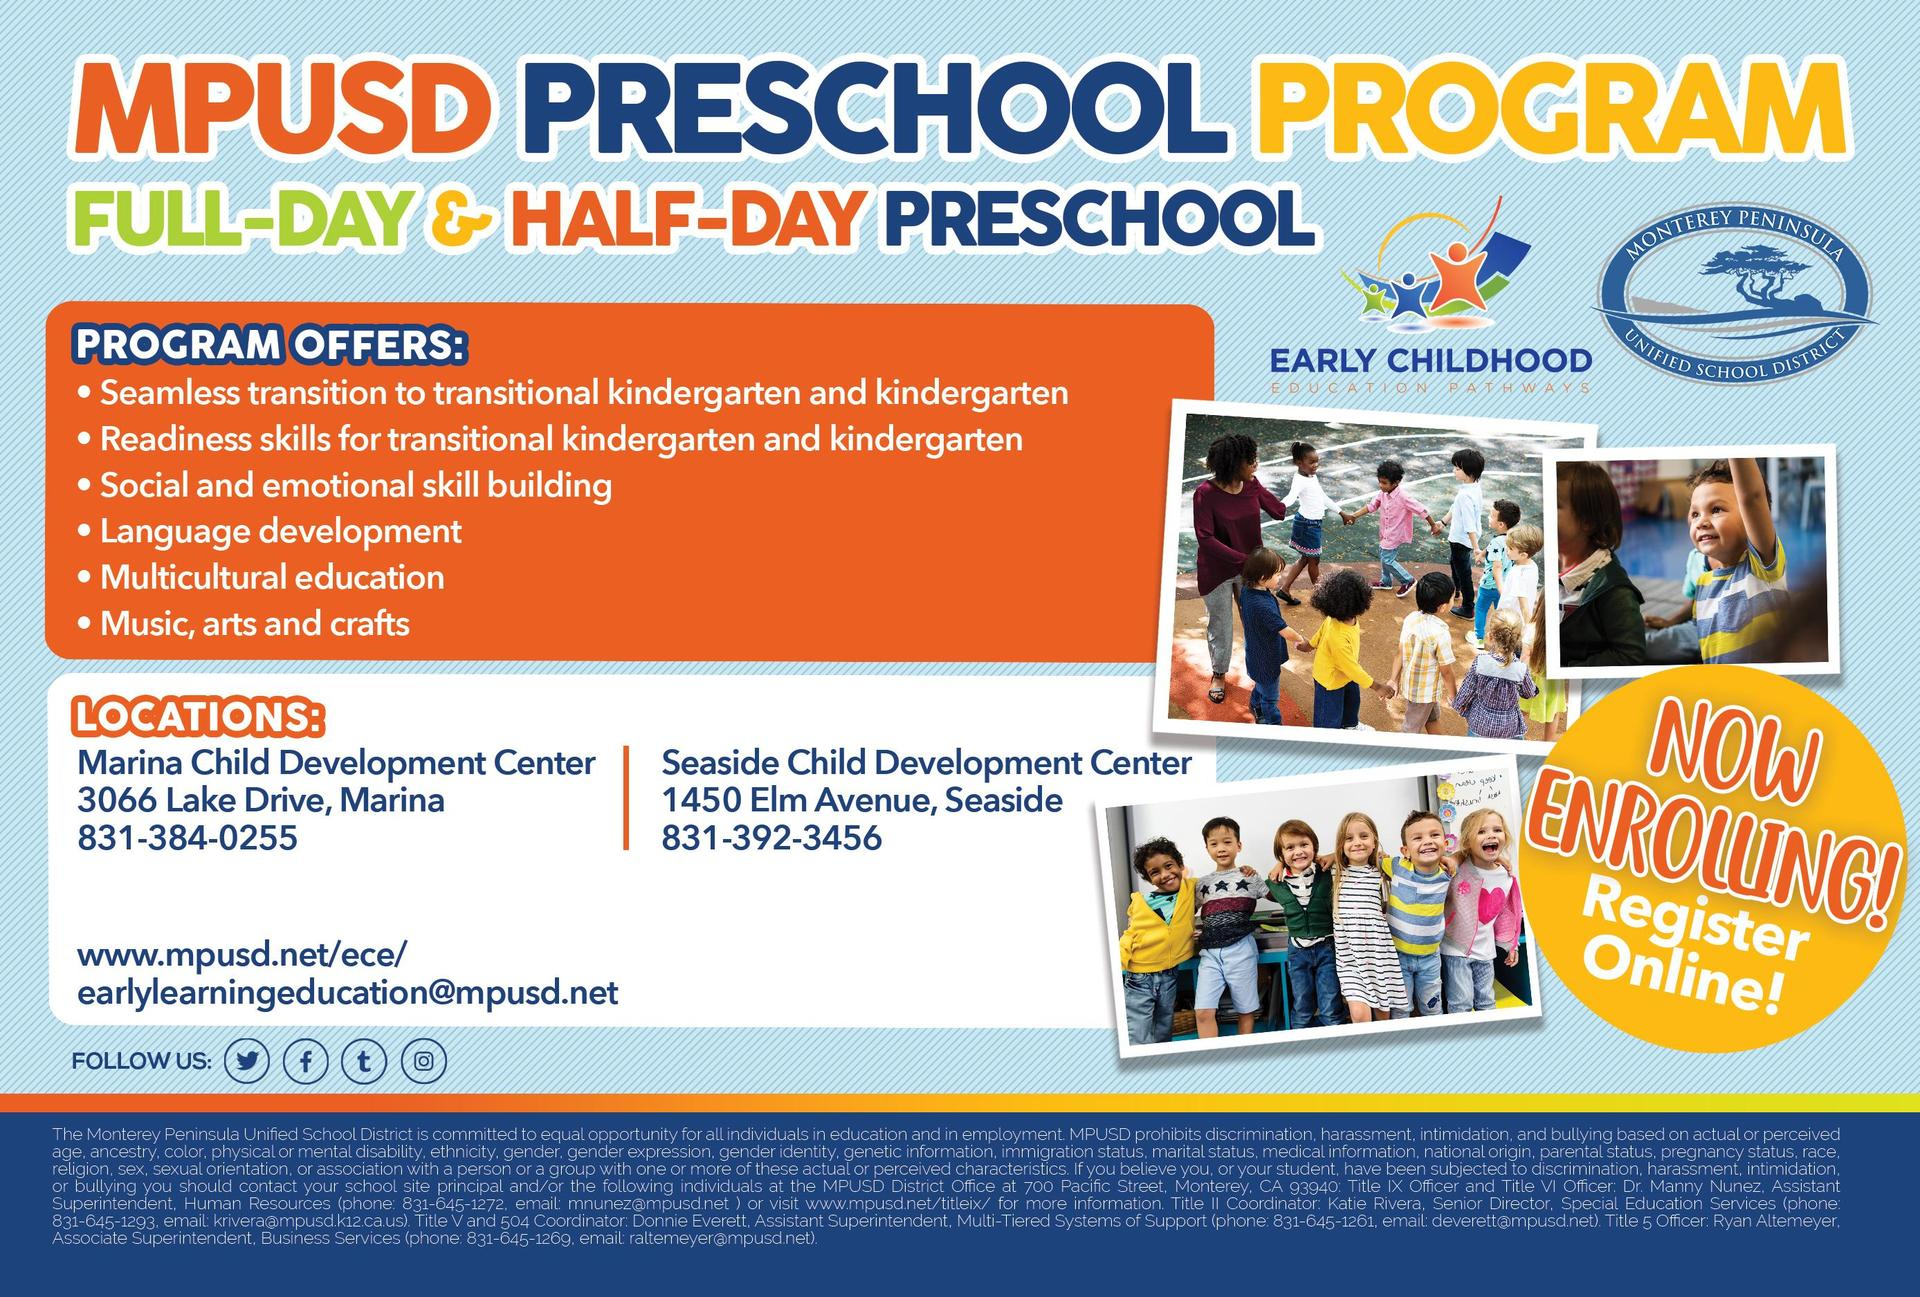 Enroll your child now in MPUSD's Preschool Program